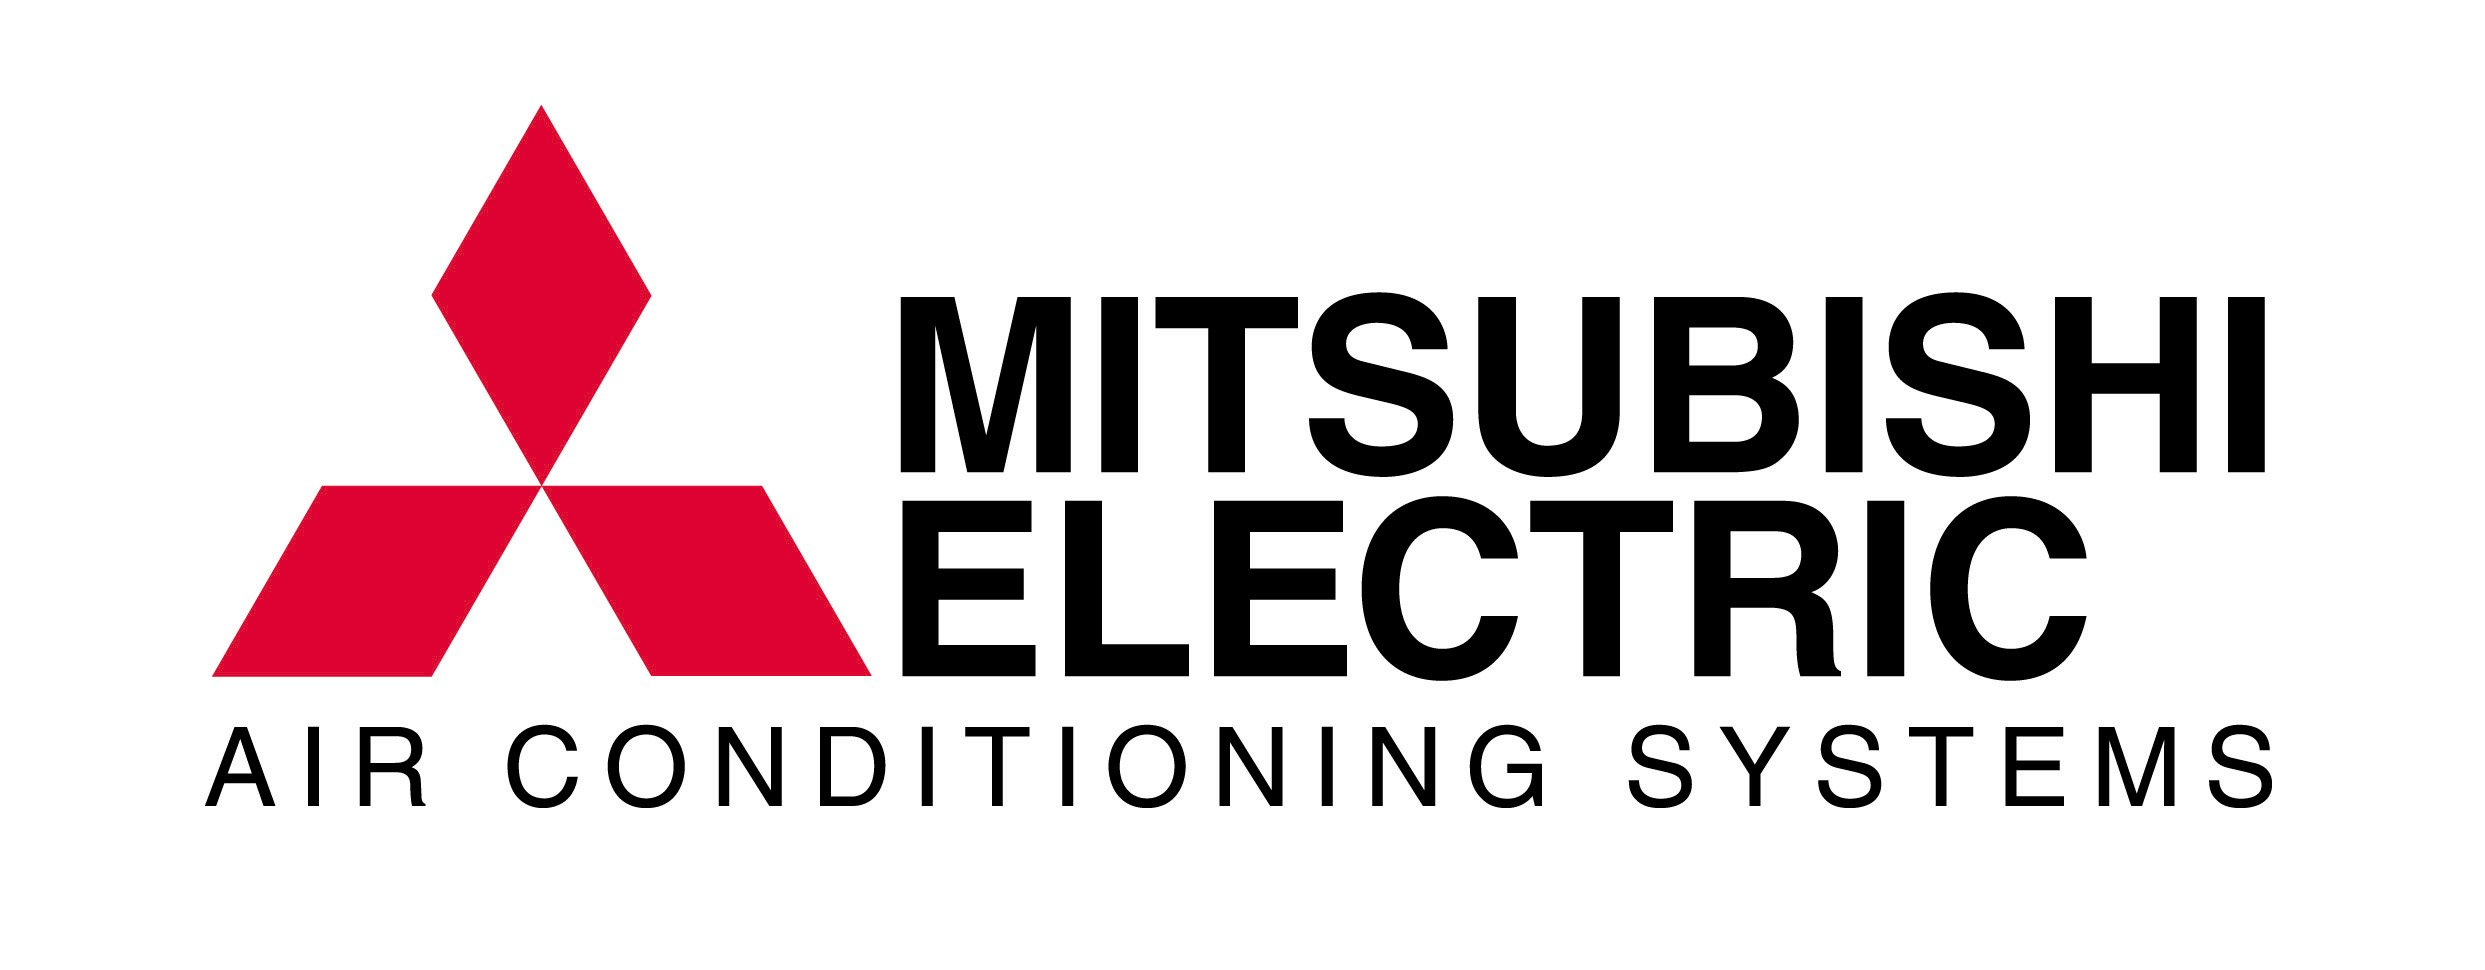 We provide heat pump repairs & installations for Mitsubishi HVAC products in the Charlotte NC, Harrisburg NC, Huntersville NC, Matthews NC, Concord NC, Cornelius NC and many more areas